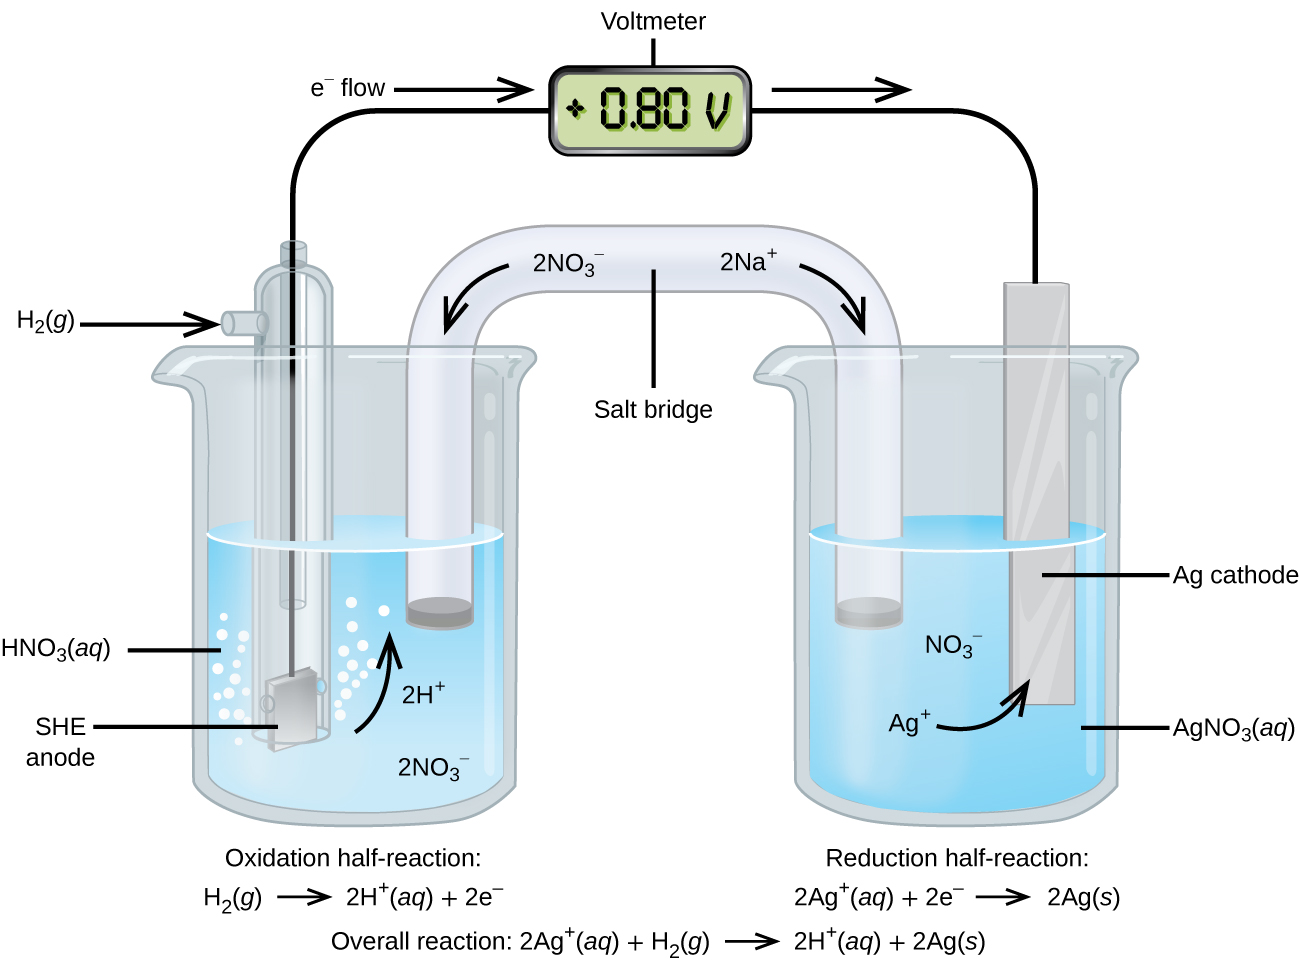 """This figure contains a diagram of an electrochemical cell. Two beakers are shown. Each is just over half full. The beaker on the left contains a clear, colorless solution which is labeled """"H N O subscript 3 ( a q )."""" The beaker on the right contains a clear, colorless solution which is labeled """"A g N O subscript 3 ( a q )."""" A glass tube in the shape of an inverted U connects the two beakers at the center of the diagram and is labeled """"Salt bridge."""" The tube contents are colorless. The ends of the tubes are beneath the surface of the solutions in the beakers and a small grey plug is present at each end of the tube. The label """"2 N a superscript plus"""" appears on the upper right portion of the tube. A curved arrow extends from this label down and to the right. The label """"2 N O subscript 3 superscript negative"""" appears on the upper left portion of the tube. A curved arrow extends from this label down and to the left. The beaker on the left has a glass tube partially submerged in the liquid. Bubbles are rising from the grey square, labeled """"SHE anode"""" at the bottom of the tube. A curved arrow points up to the right. The labels """"2 H superscript plus"""" and """"2 N O subscript 3 superscript negative"""" appear on the liquid in the beaker. A black wire extends from the grey square up the interior of the tube through a small port at the top to a rectangle with a digital readout of """"positive 0.80 V"""" which is labeled """"Voltmeter."""" A second small port extends out the top of the tube to the left. An arrow points to the port opening from the left. The base of this arrow is labeled """"H subscript 2 ( g )."""" The beaker on the right has a silver strip that is labeled """"A g cathode."""" A wire extends from the top of this strip to the voltmeter. An arrow points toward the voltmeter from the left which is labeled """"e superscript negative flow."""" Similarly, an arrow points away from the voltmeter to the right. The solution in the beaker on the right has the labels """"N O subscript 3 superscript negative"""" a"""